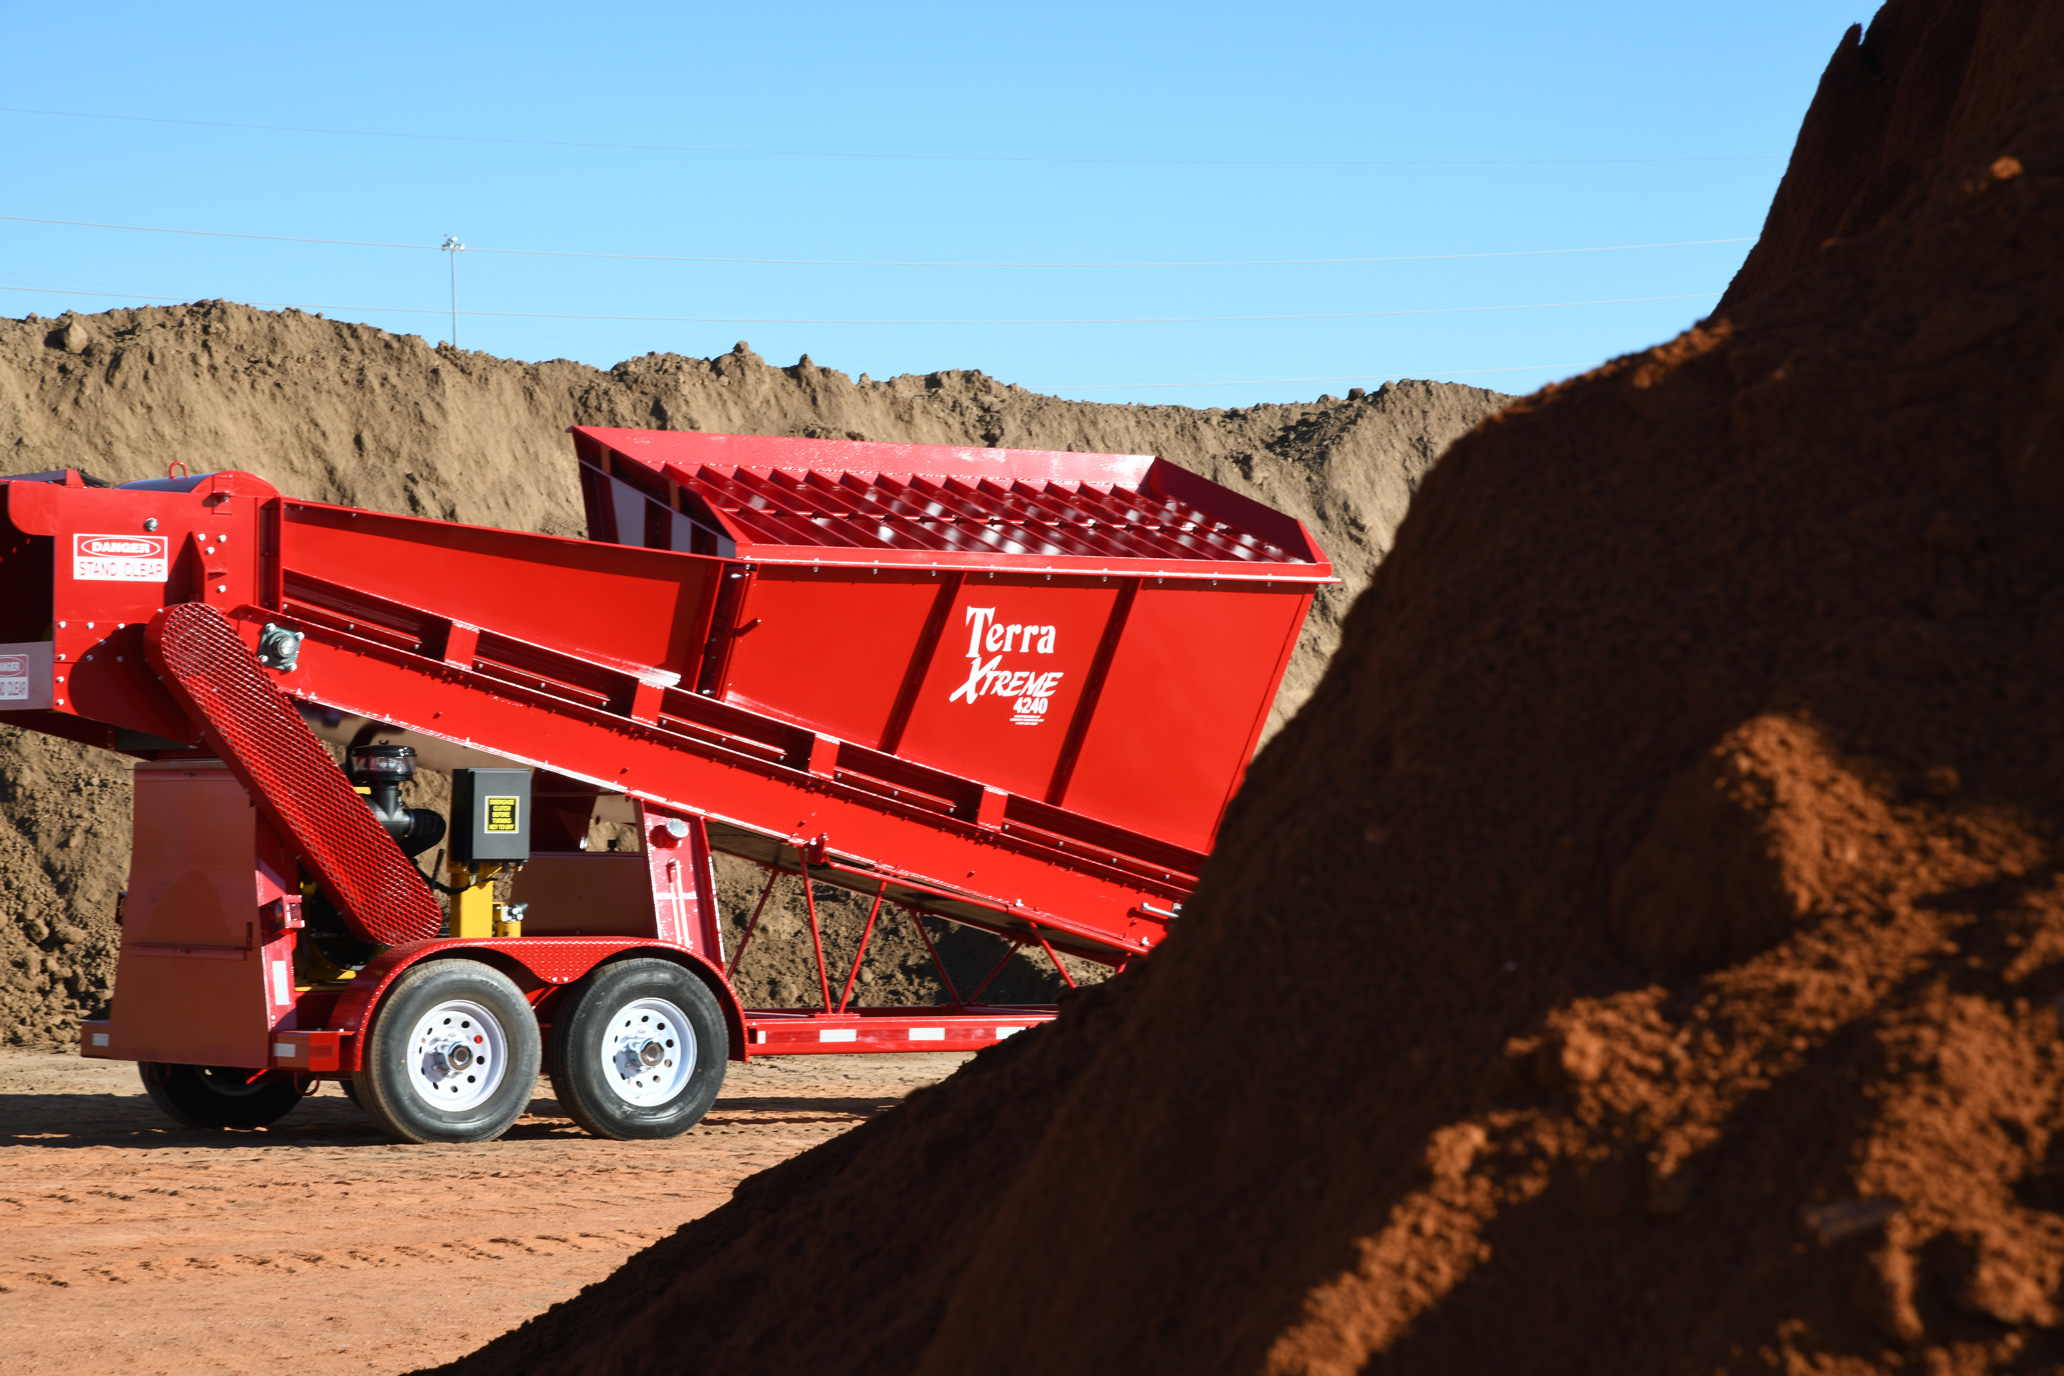 Murphy Products - Murphy Products, Inc. is a manufacturing company that produces the Terra XTREME, a one-of-a-kind mobile soil processor and pulverizer that blends and aerates material.